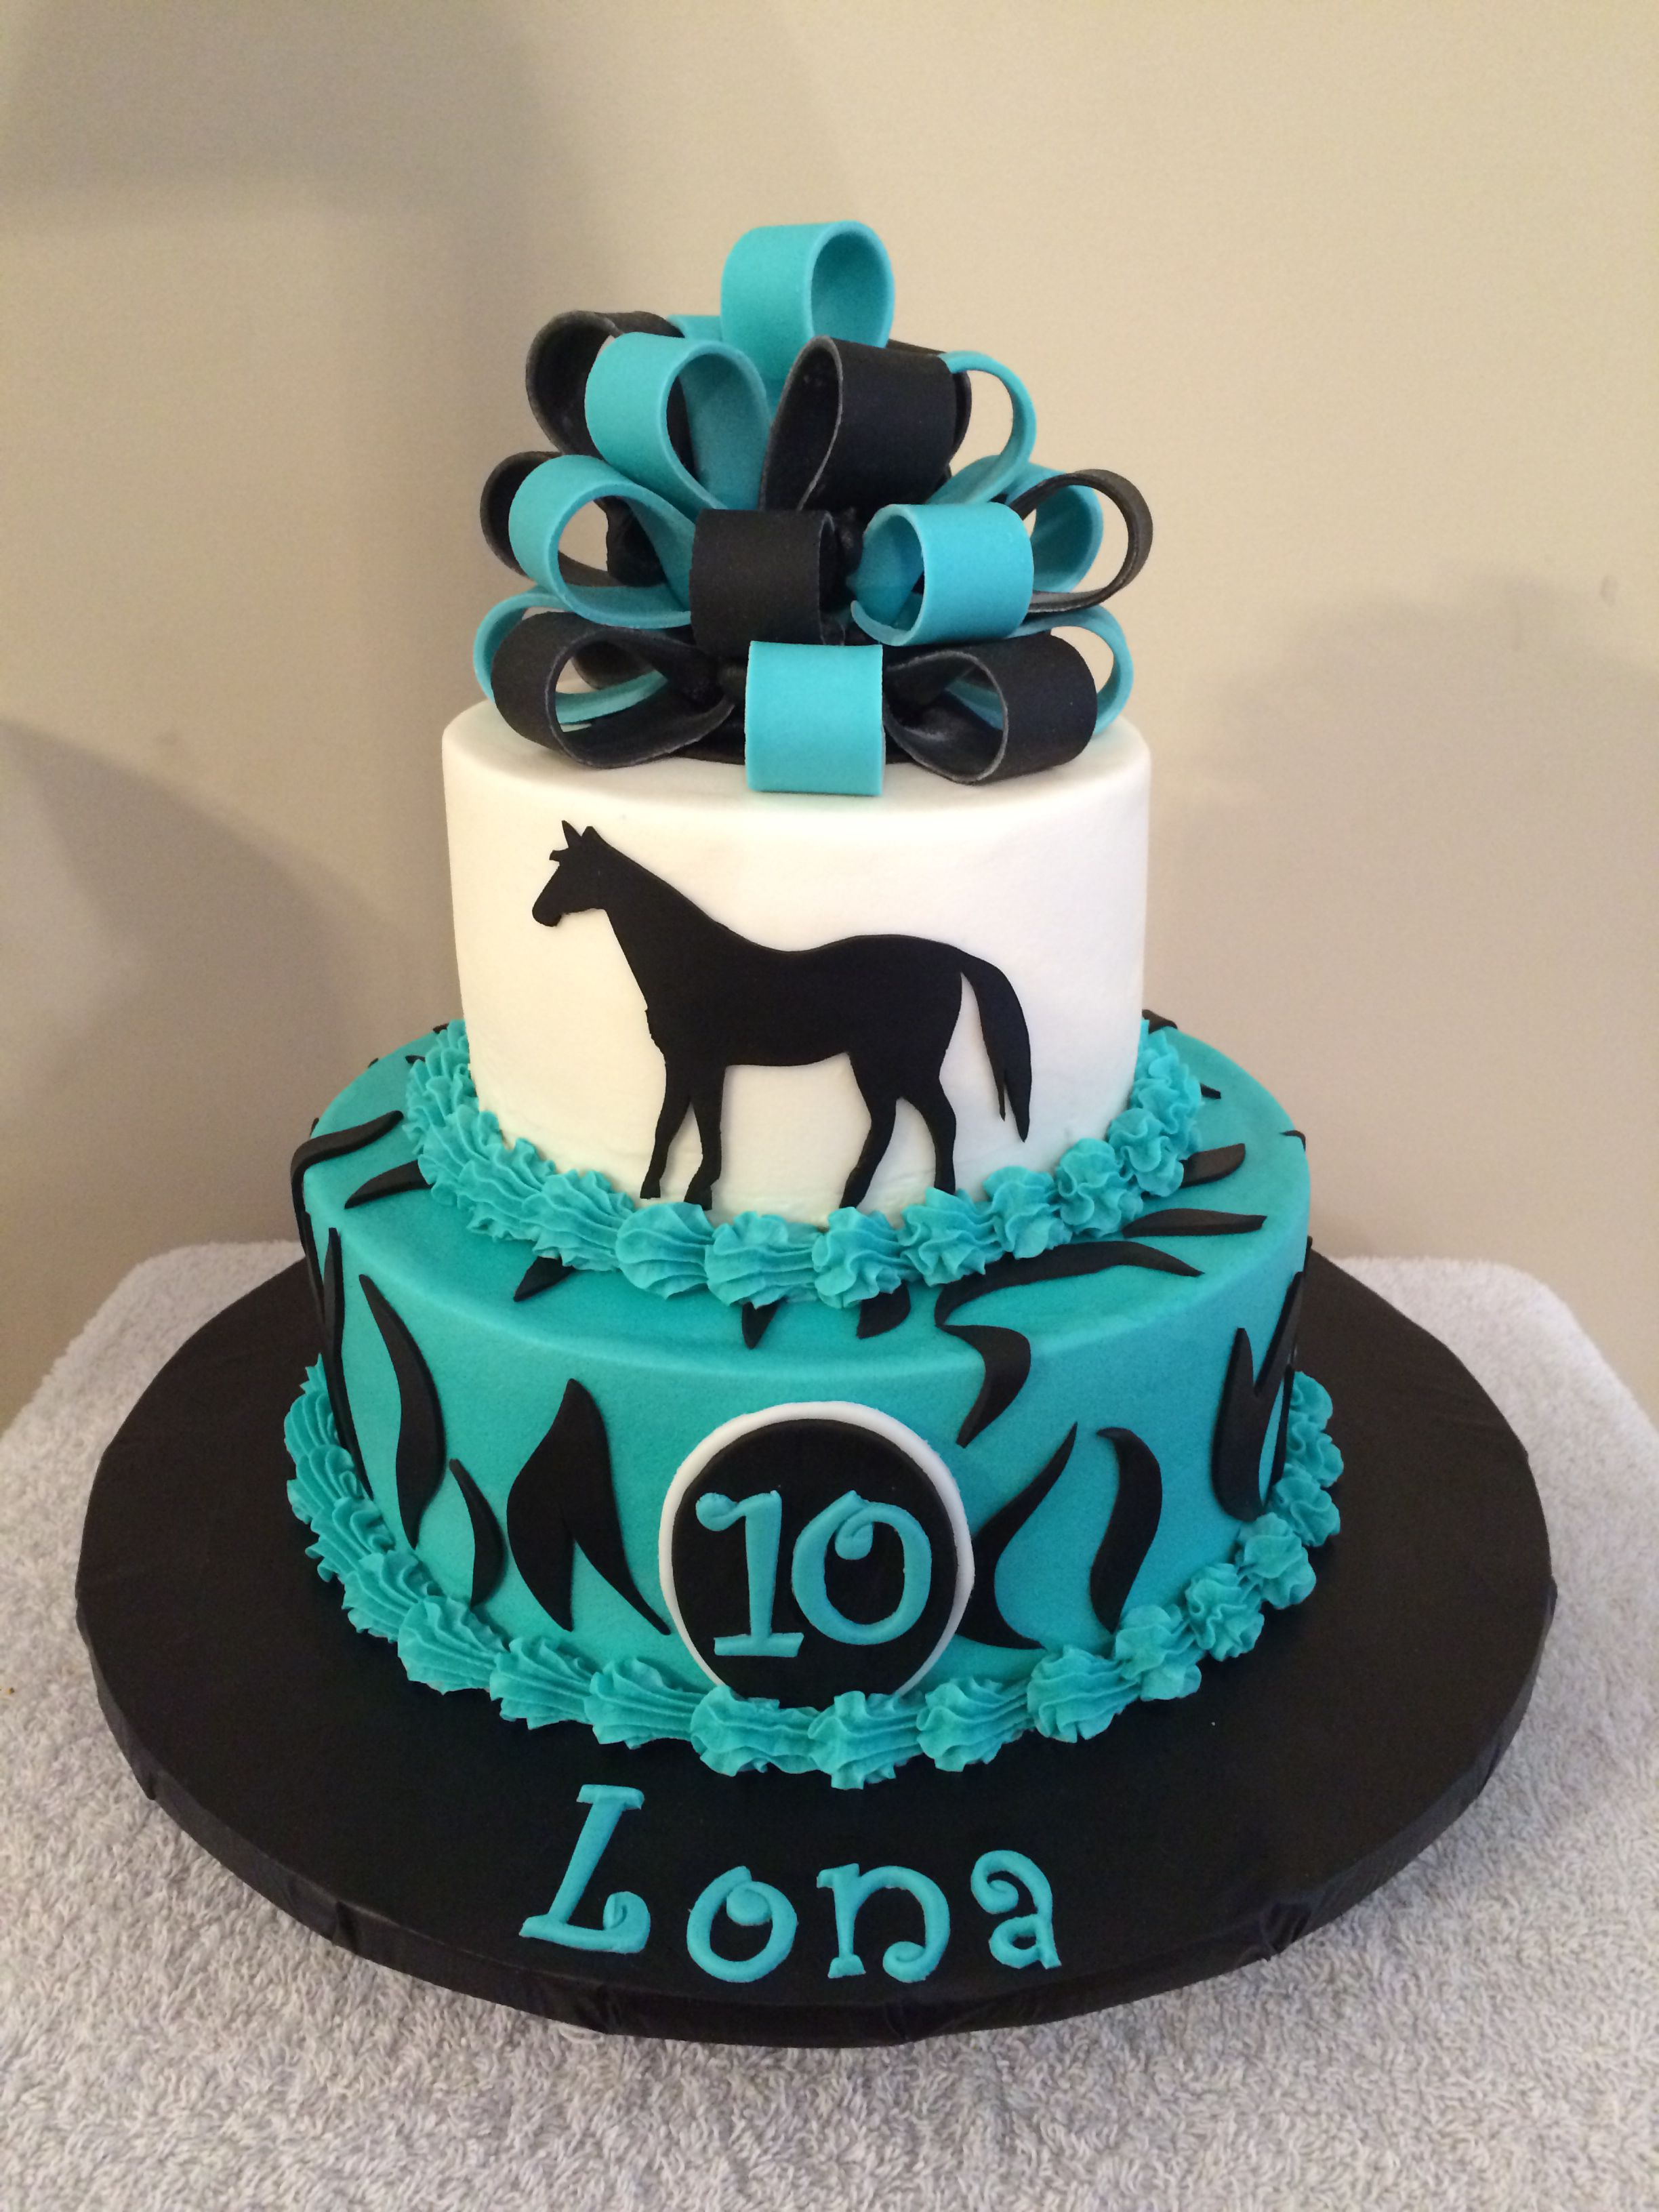 2 Tier Zebra Horse Themed Cake With Buttercream Icing And Fondant Accents